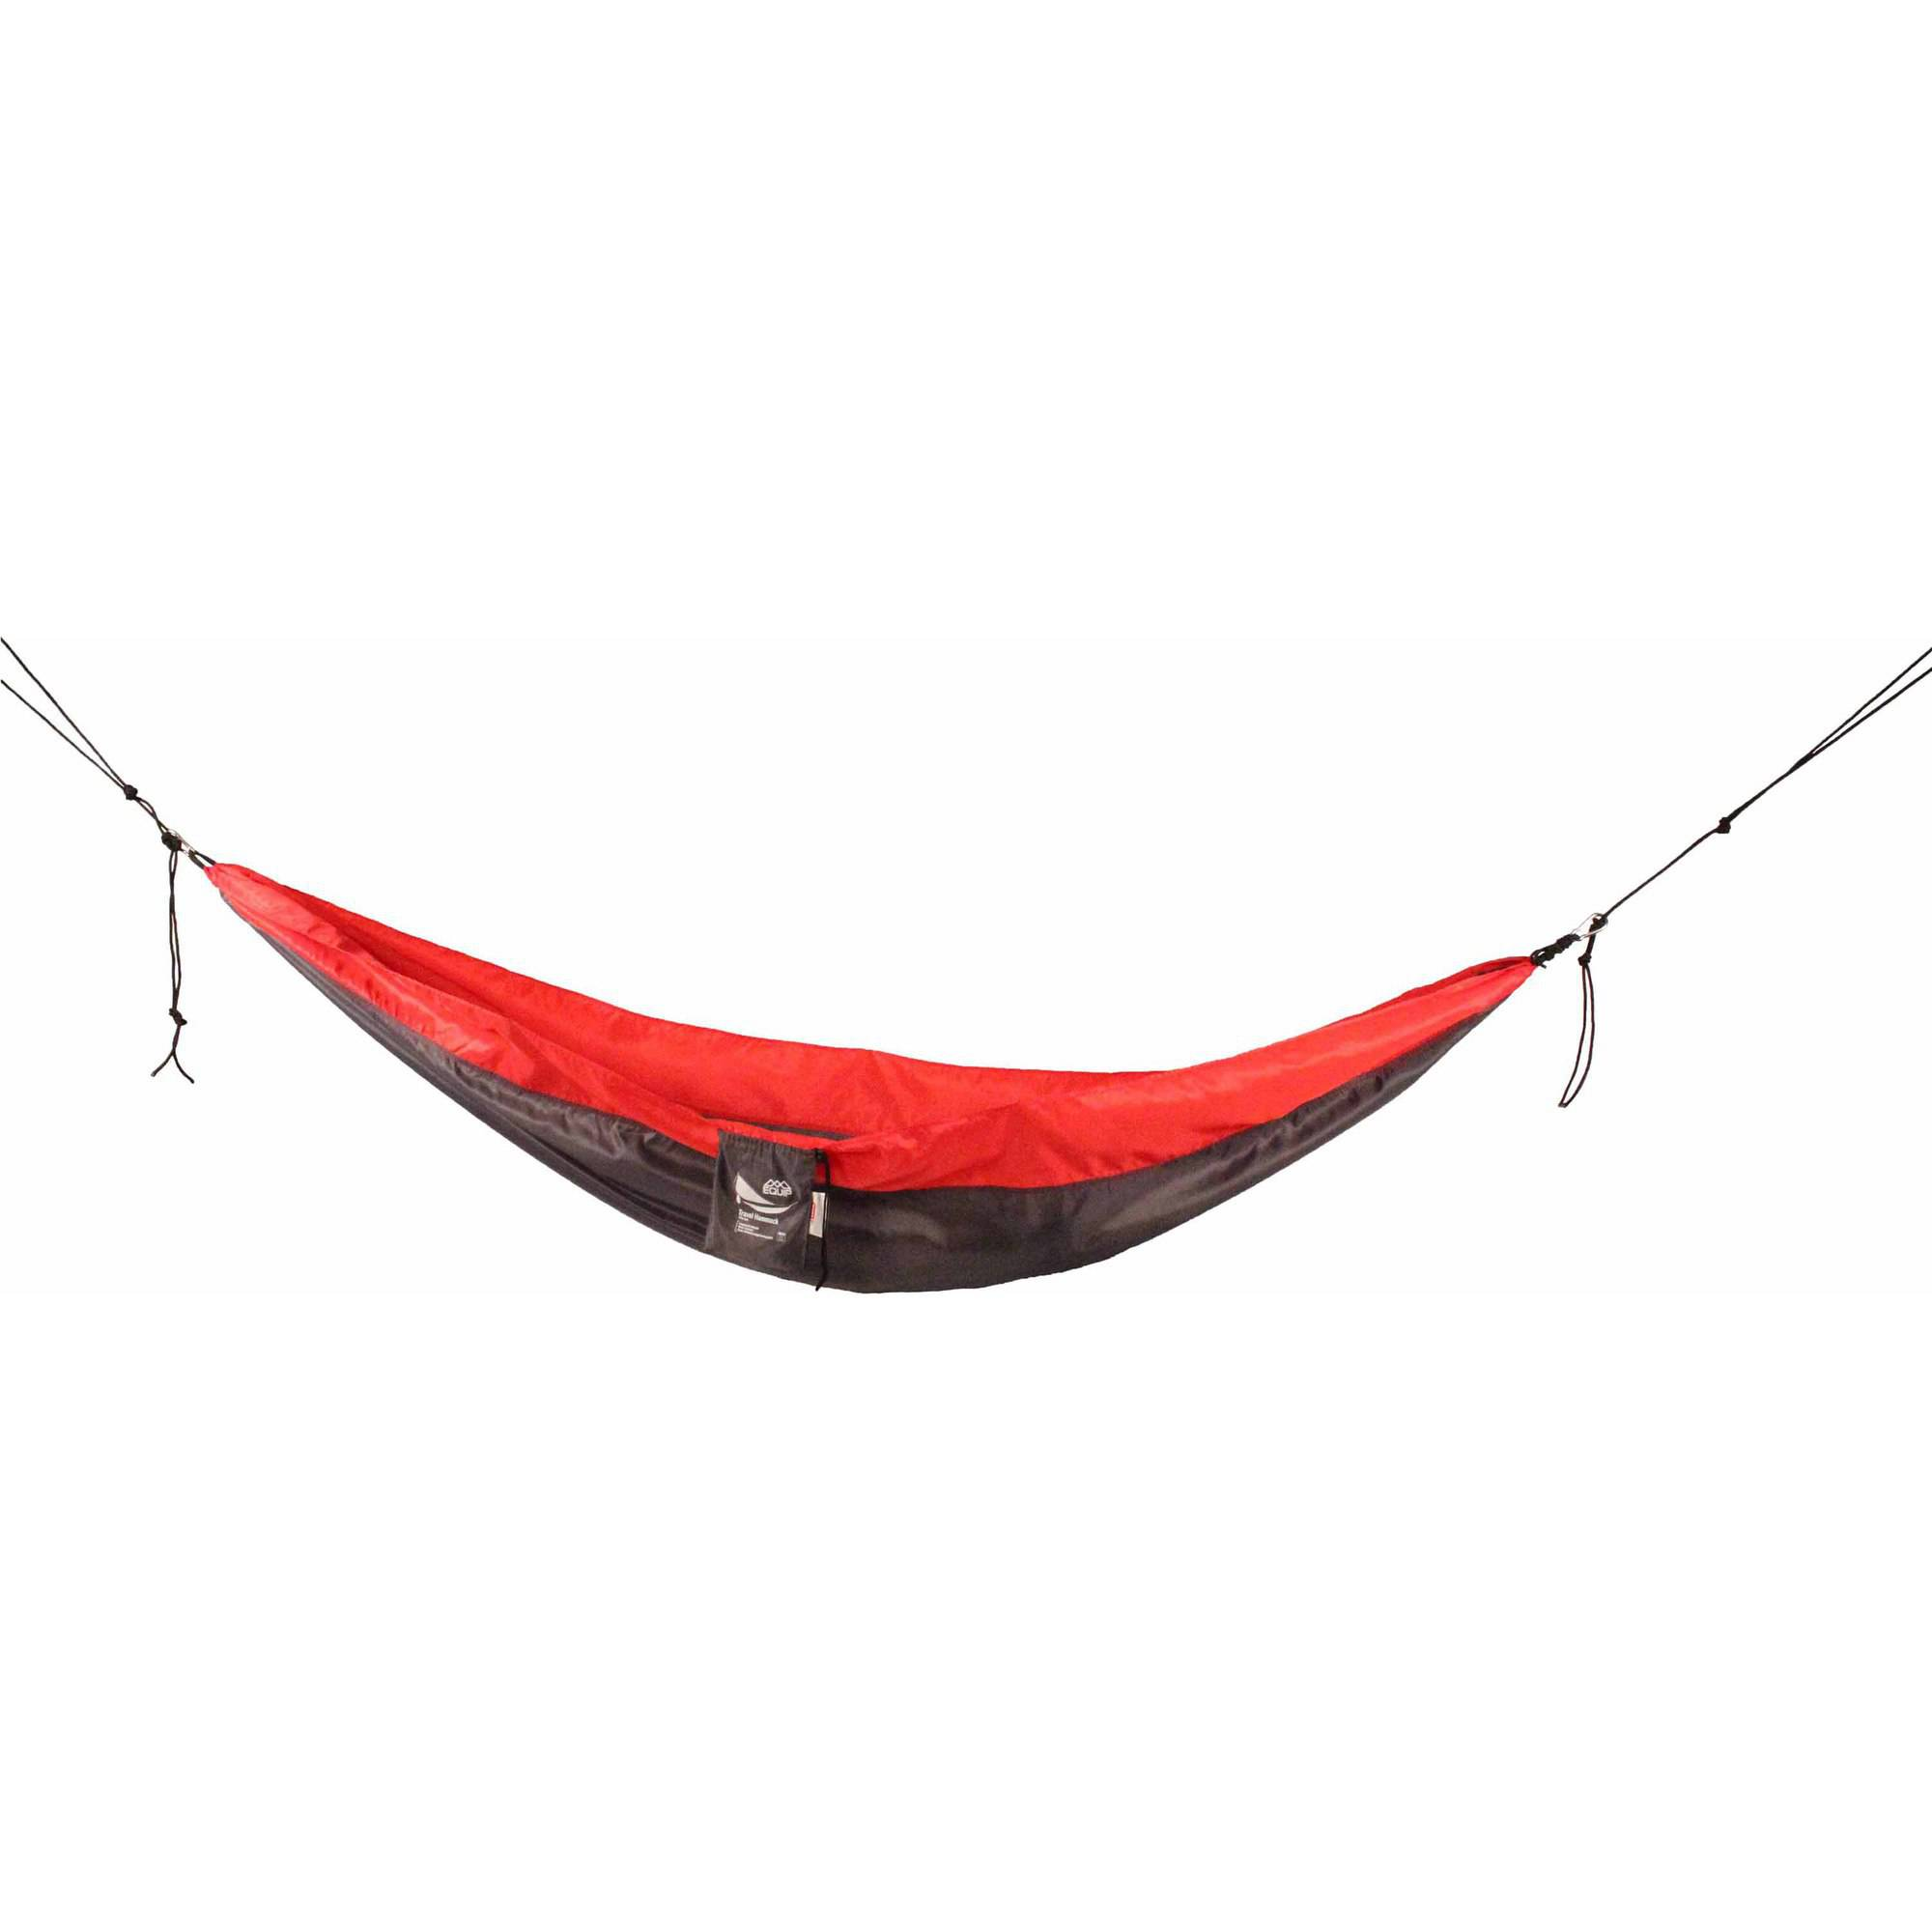 Equip One Person Travel Hammock by Denovo Brands